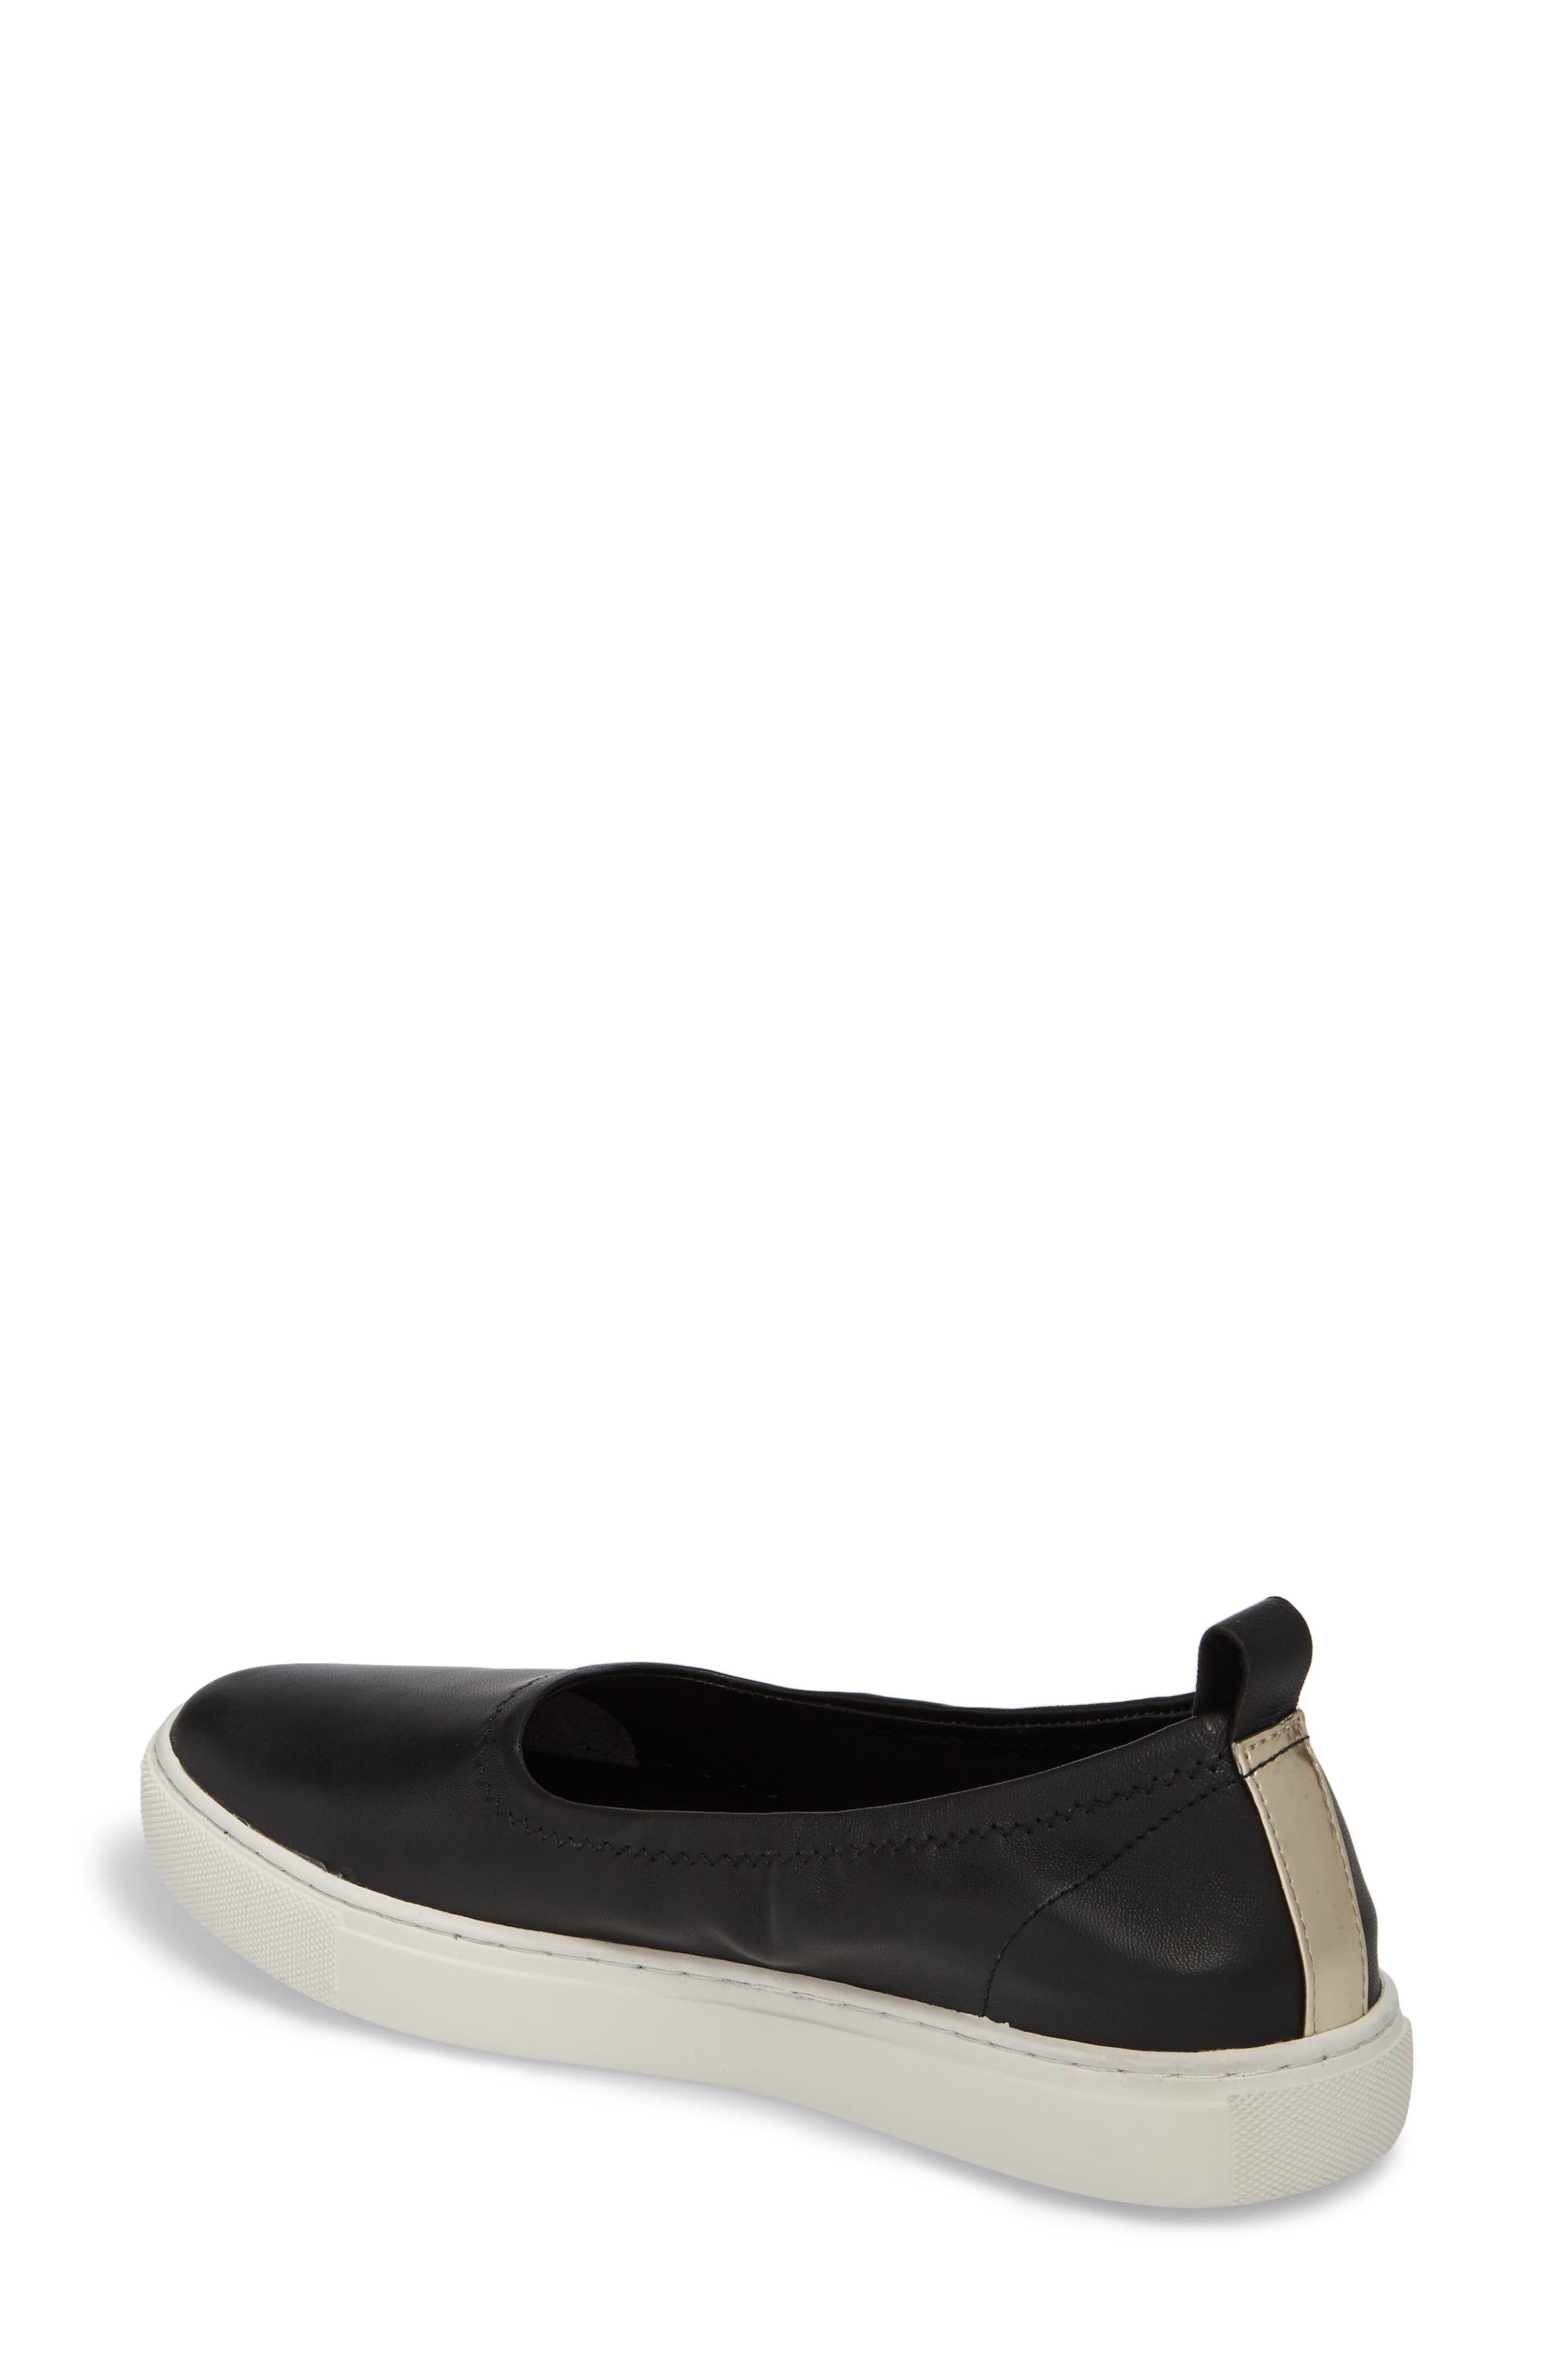 Kam Techni-Cole Ballet Flat,                             Alternate thumbnail 2, color,                             Black Leather